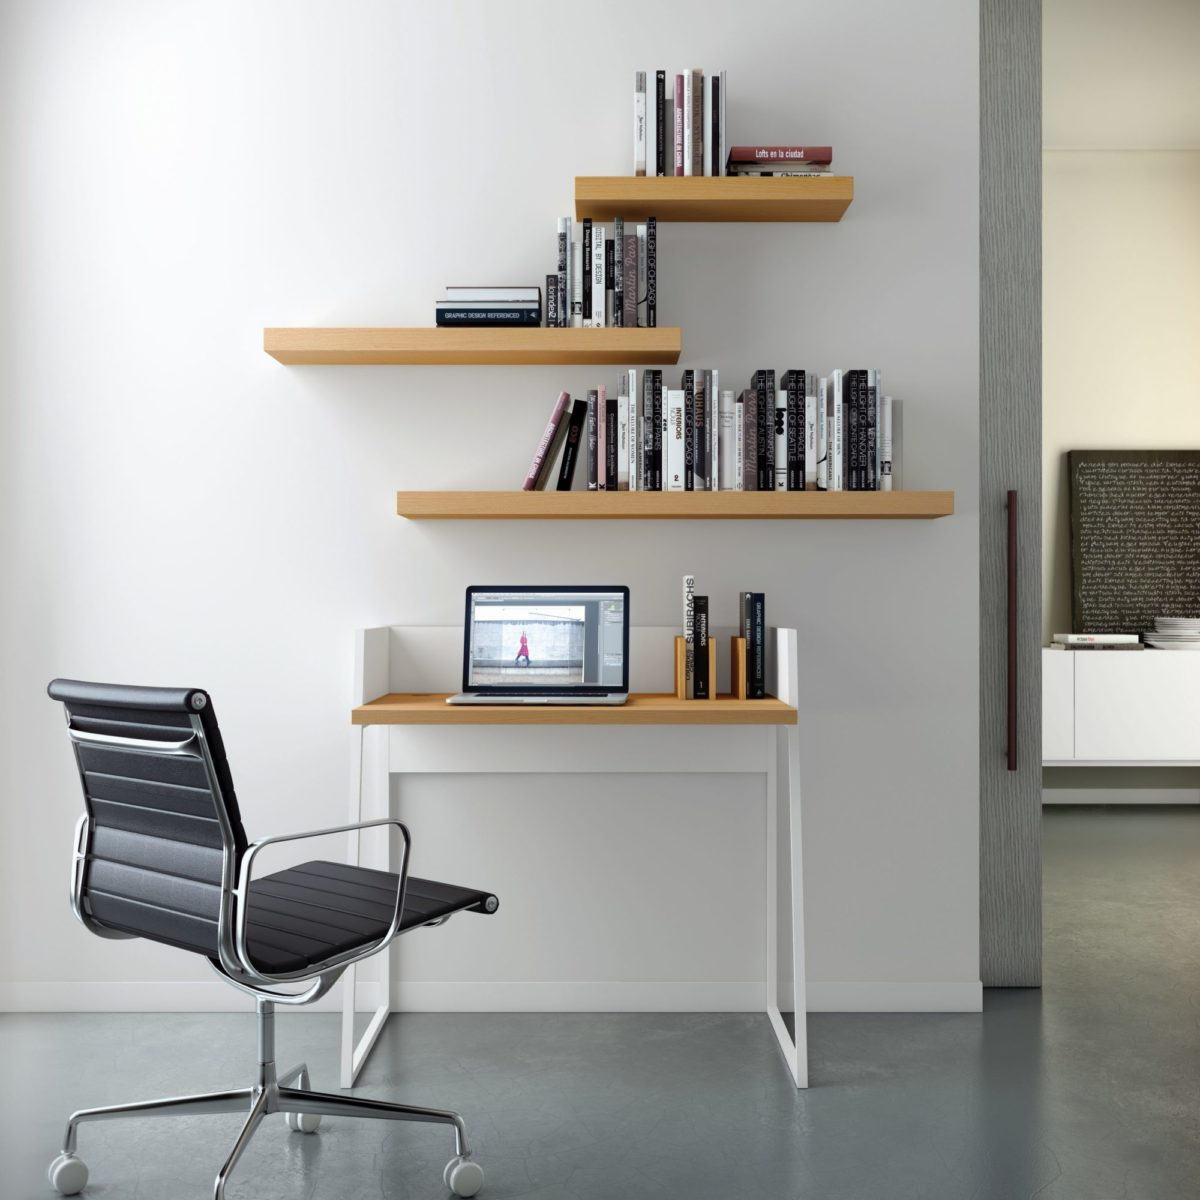 22bonami9003052811-volga-desk-pure-white-with-oak-9_16571707785_o-1200x1200.jpg